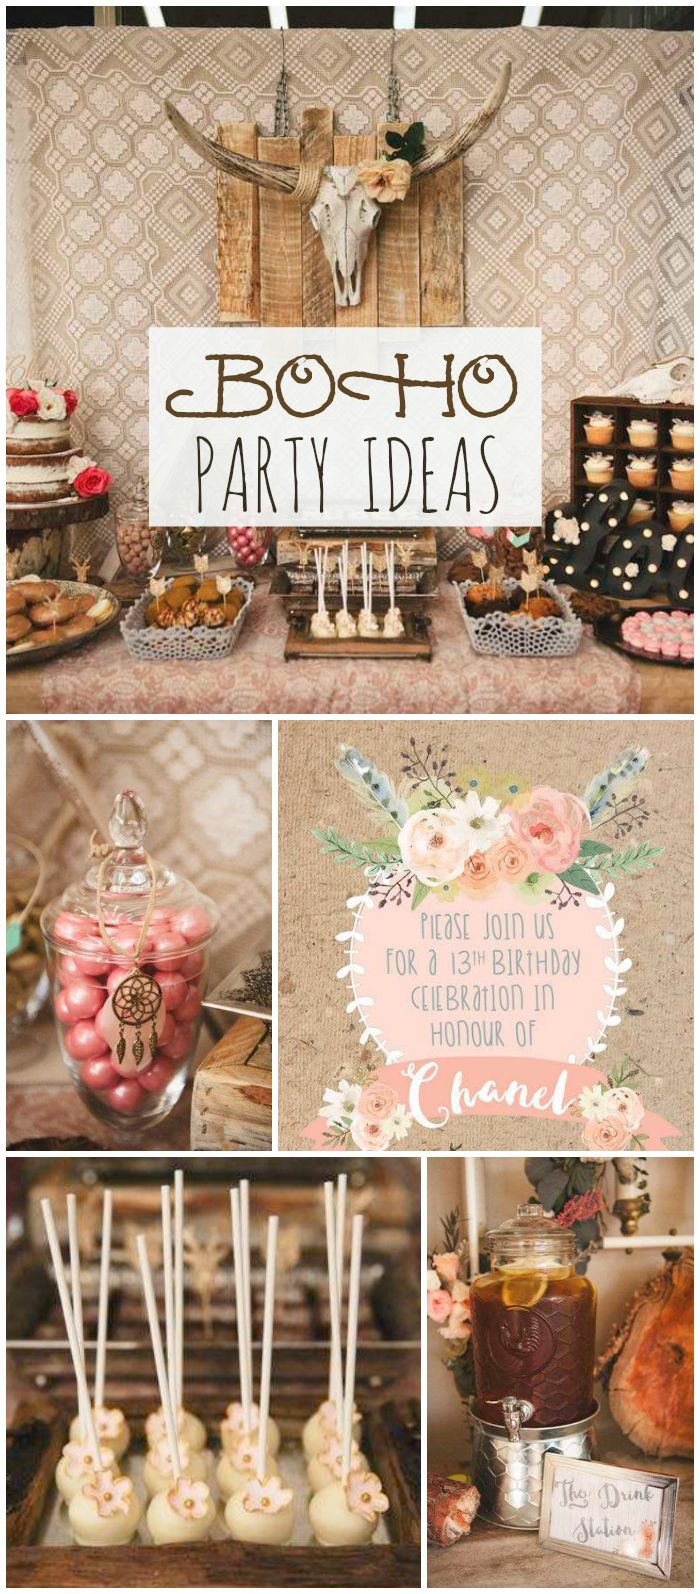 This Party Has A Rustic Boho Chic Style See More Ideas At CatchMyParty